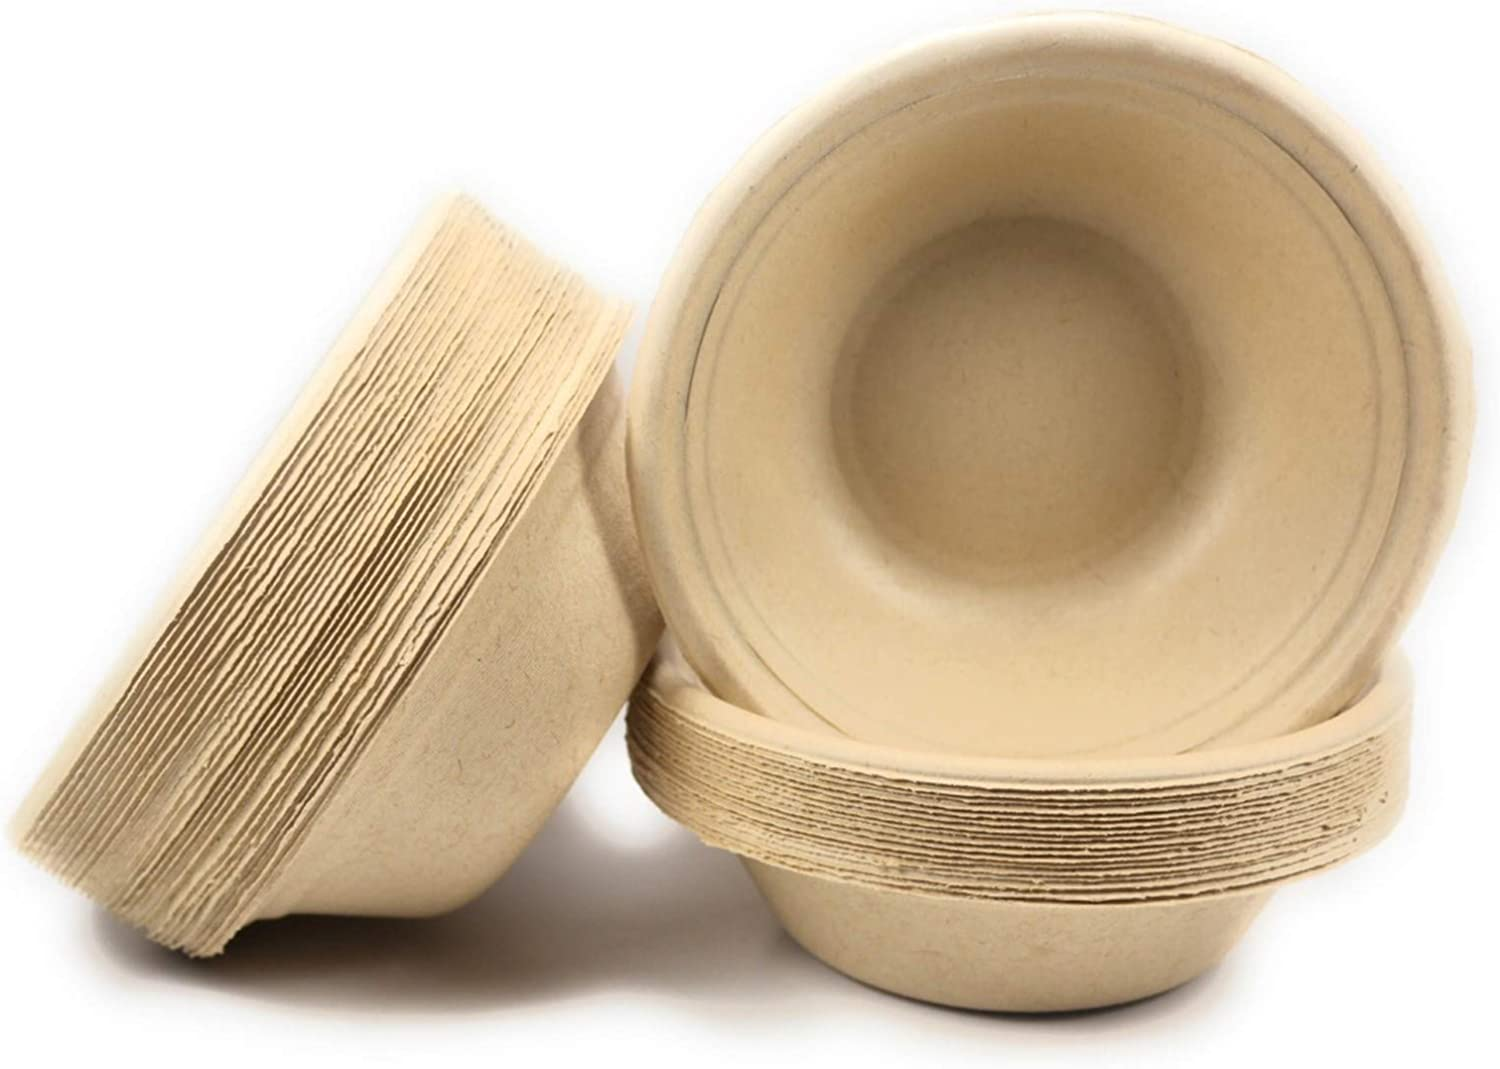 Nature Link Kosher Certified Made in USA (50) Pack 100% Compostable 12 oz Paper Bowls Heavy Duty Eco Friendly Made of Sugar Cane Fibers Brown Biodegradable